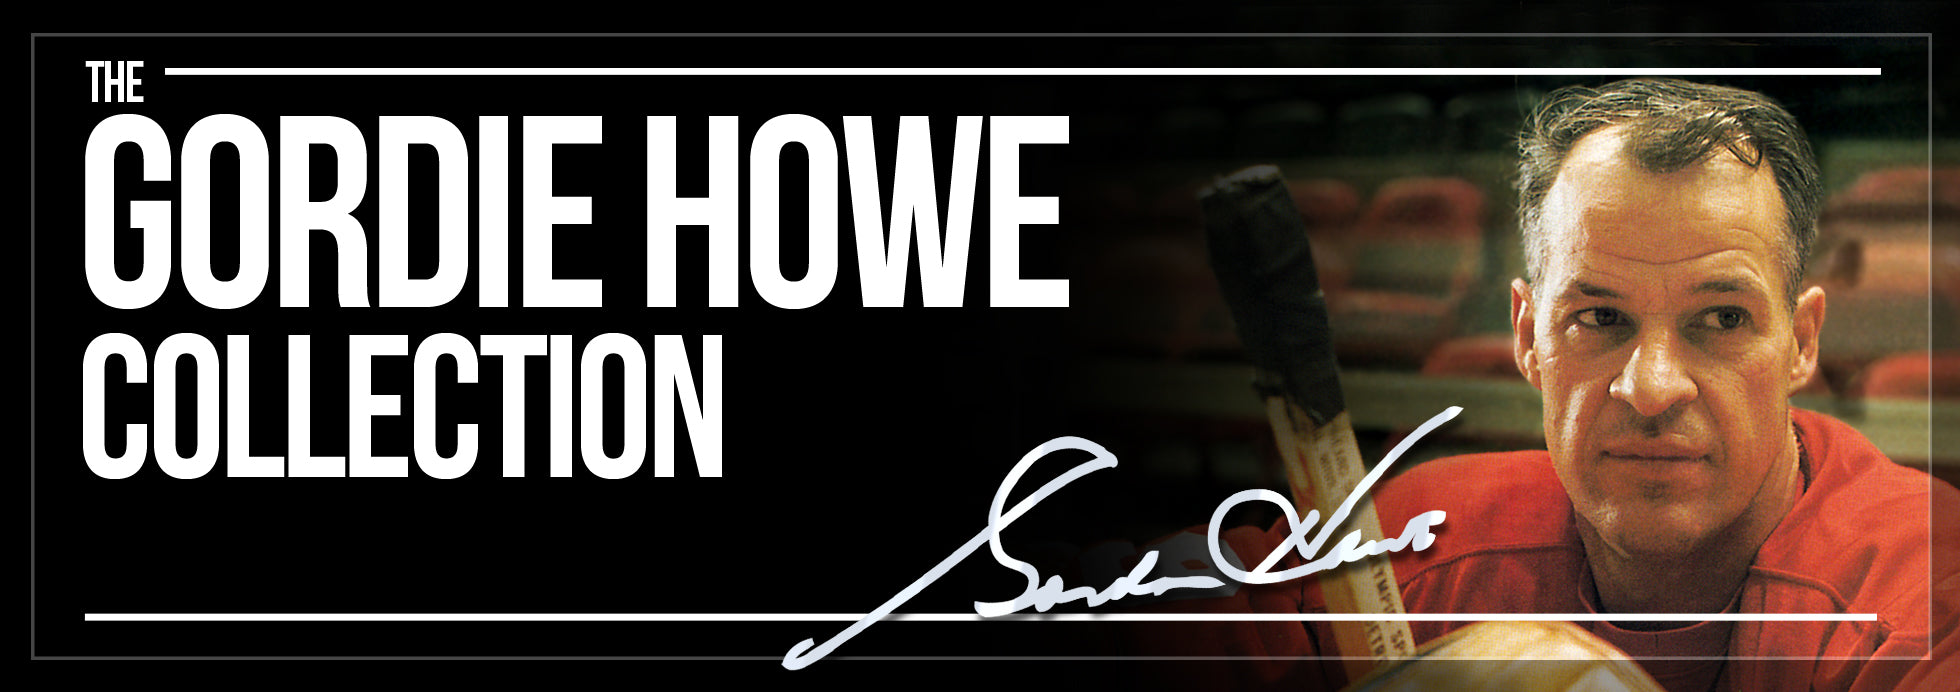 Gordie Howe Collection Banner